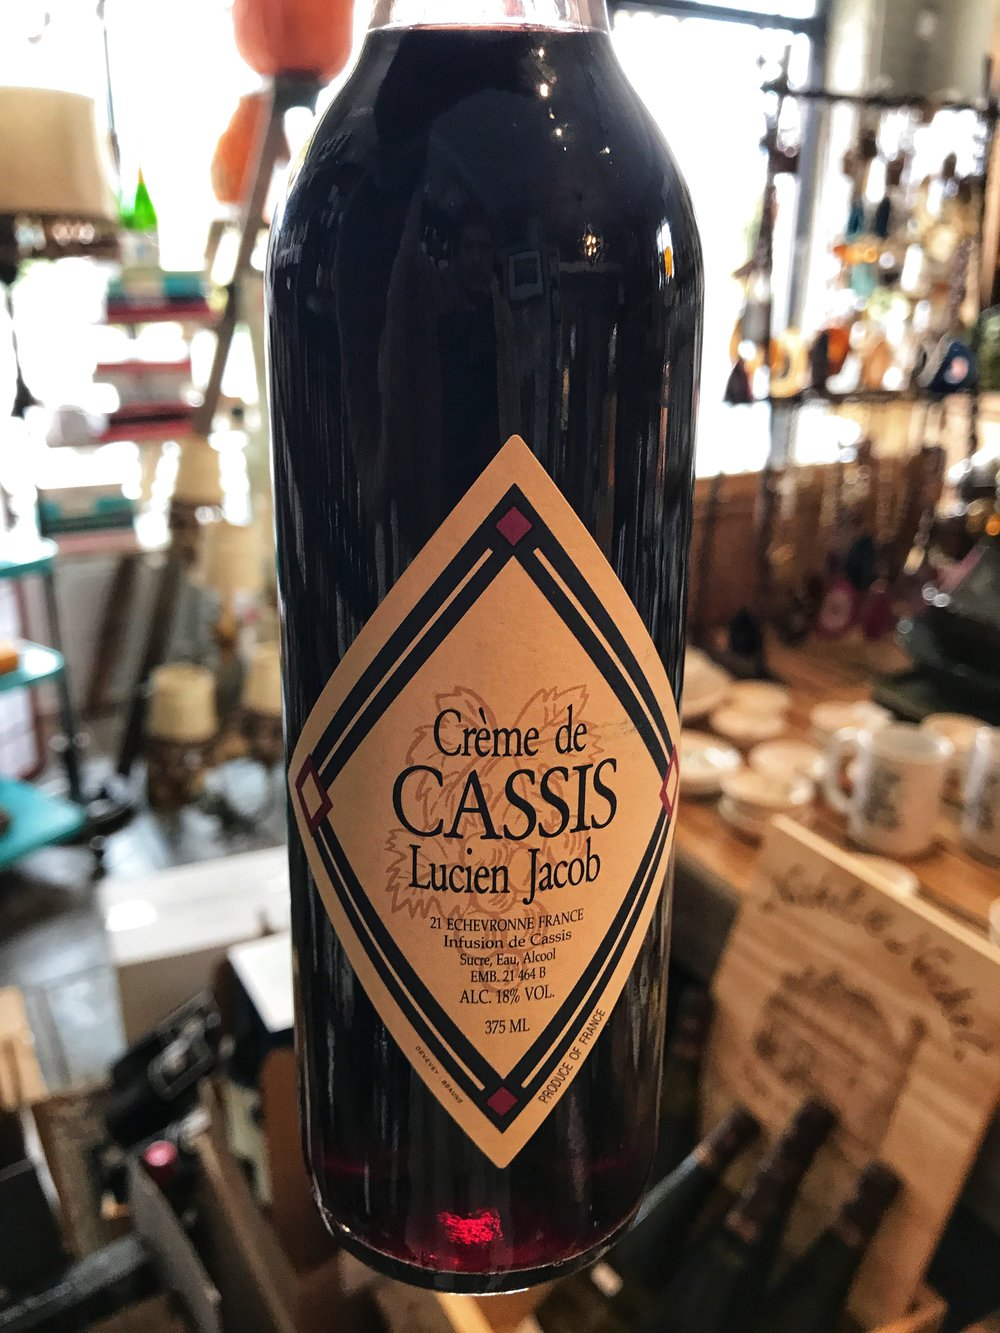 Domaine Lucien Jacob are not only very fine producers of white and red Burgundy but they also produce a highly regarded crème de cassis made from organically farmed blackcurrants grown around Beaune.  This is the real deal. Imported by Rosenthal Wine Merchant. $17.99 (375 ml)